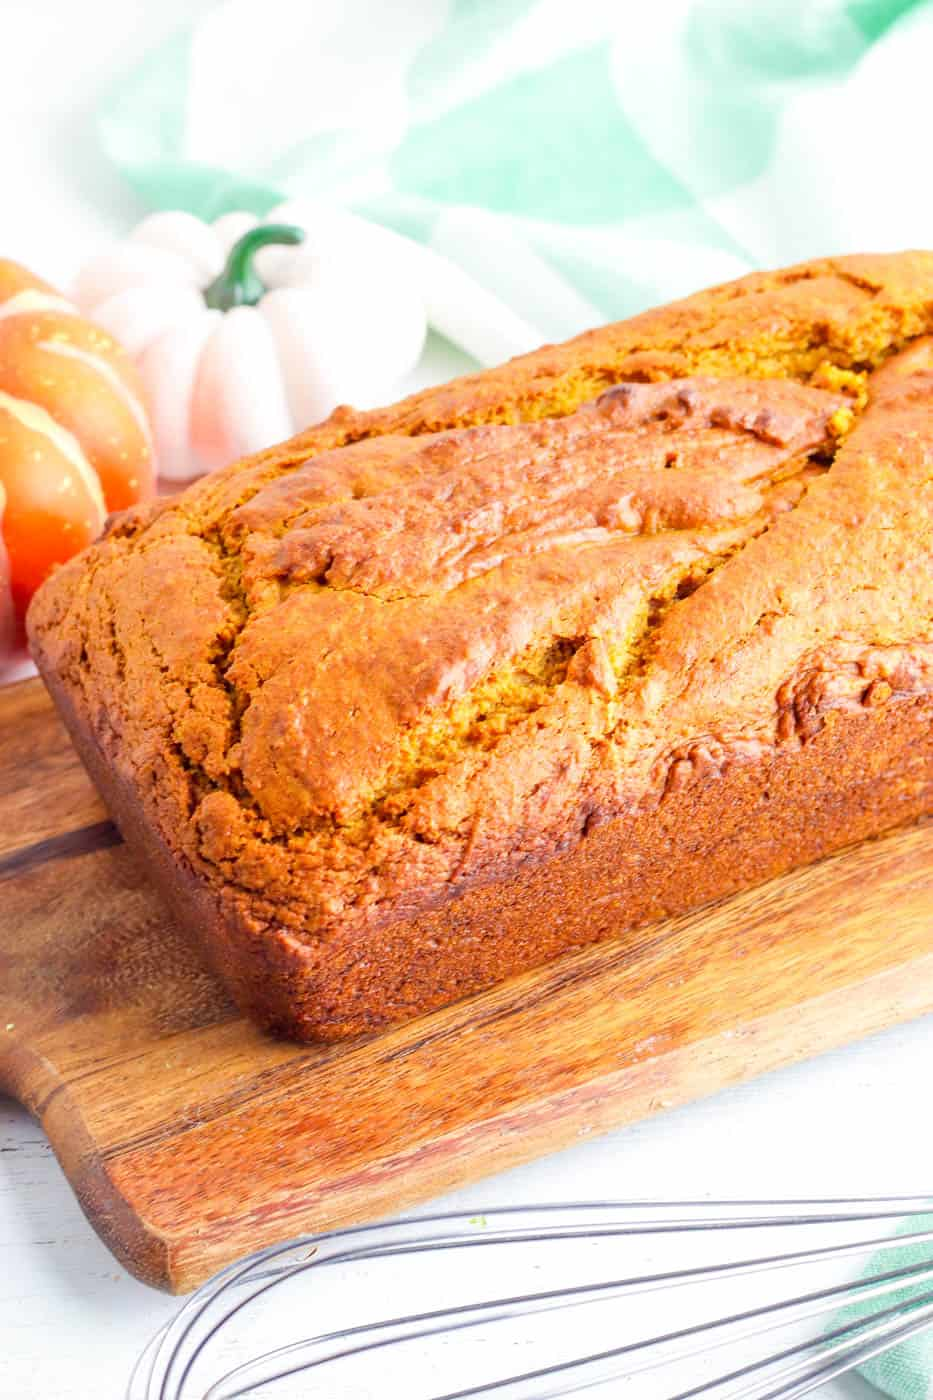 vegan pumpkin bread fresh out of the oven on a wooden cutting board